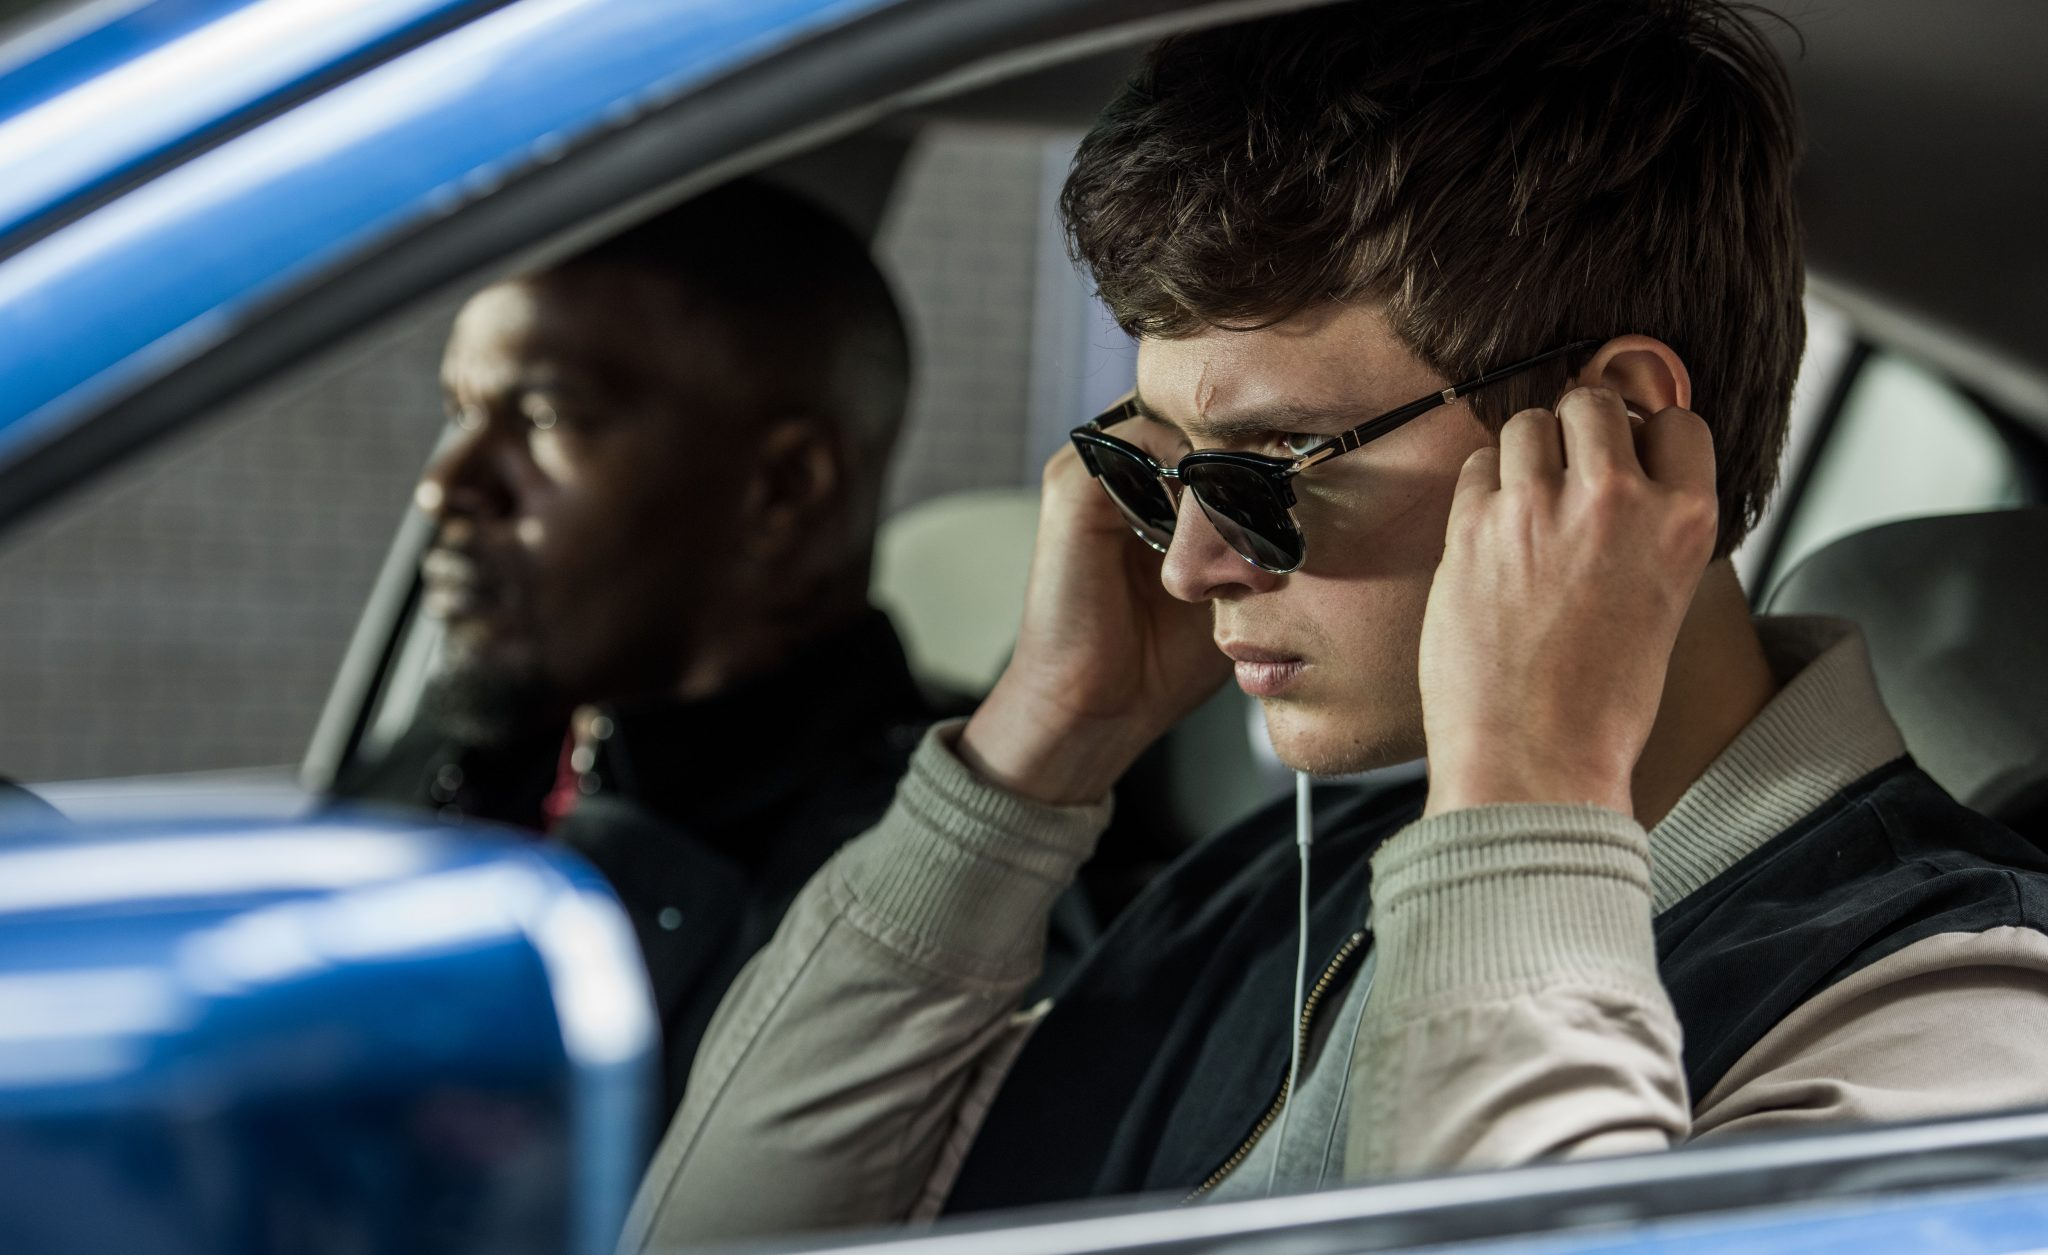 Baby (ANSEL ELGORT) and Bats (JAMIE FOXX) on the way to the post office job with Buddy (JON HAMM) and Darling (EIZA GONZALEZ) as cops pull up next to them in TriStar Pictures